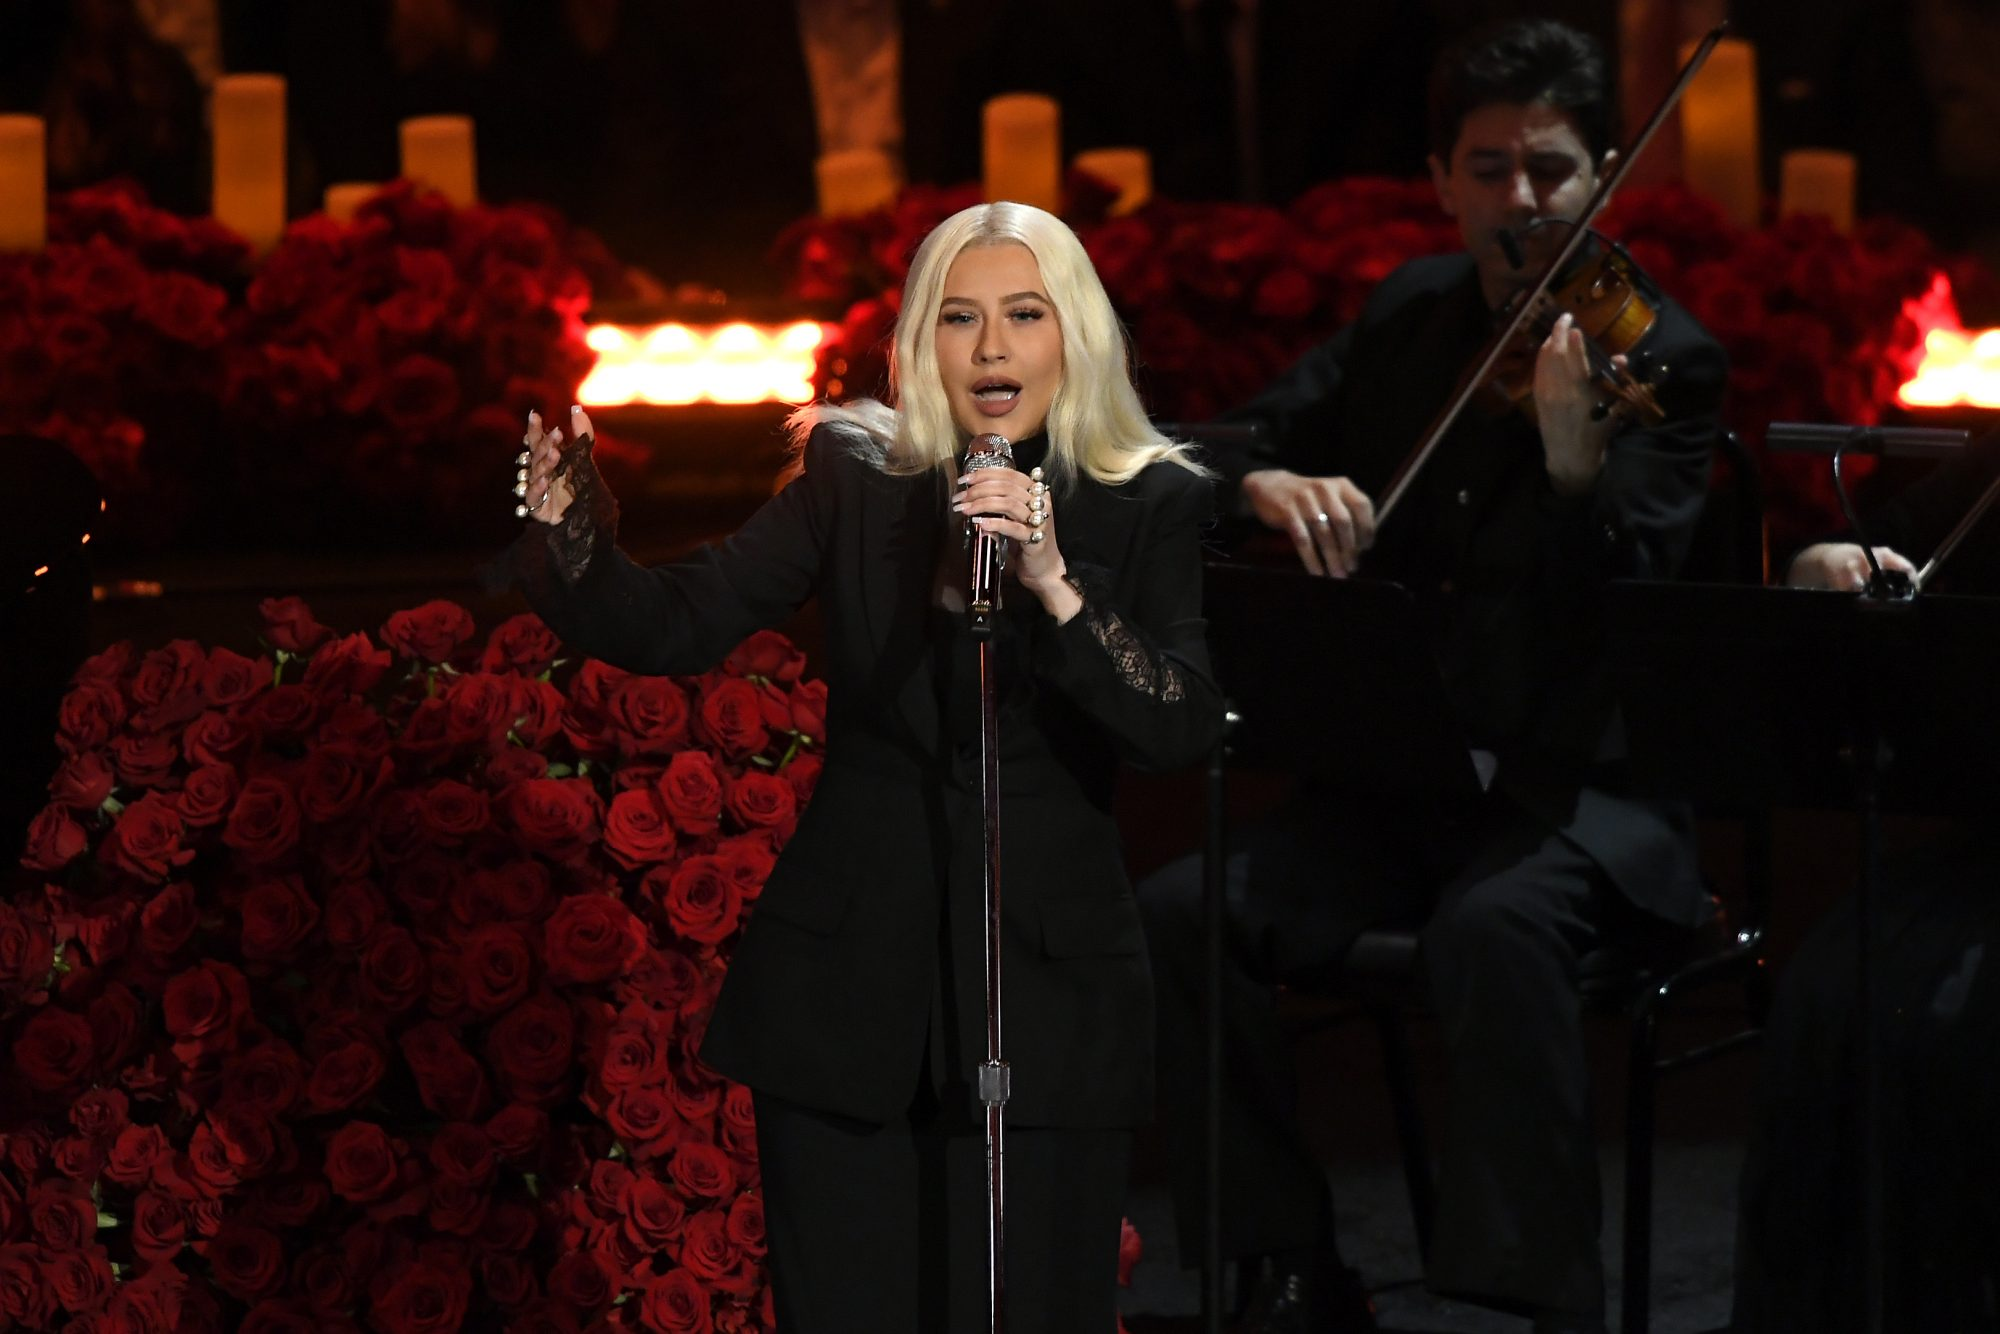 Christina Aguilera performs during The Celebration of Life for Kobe & Gianna Bryant at Staples Center on February 24, 2020 in Los Angeles, California